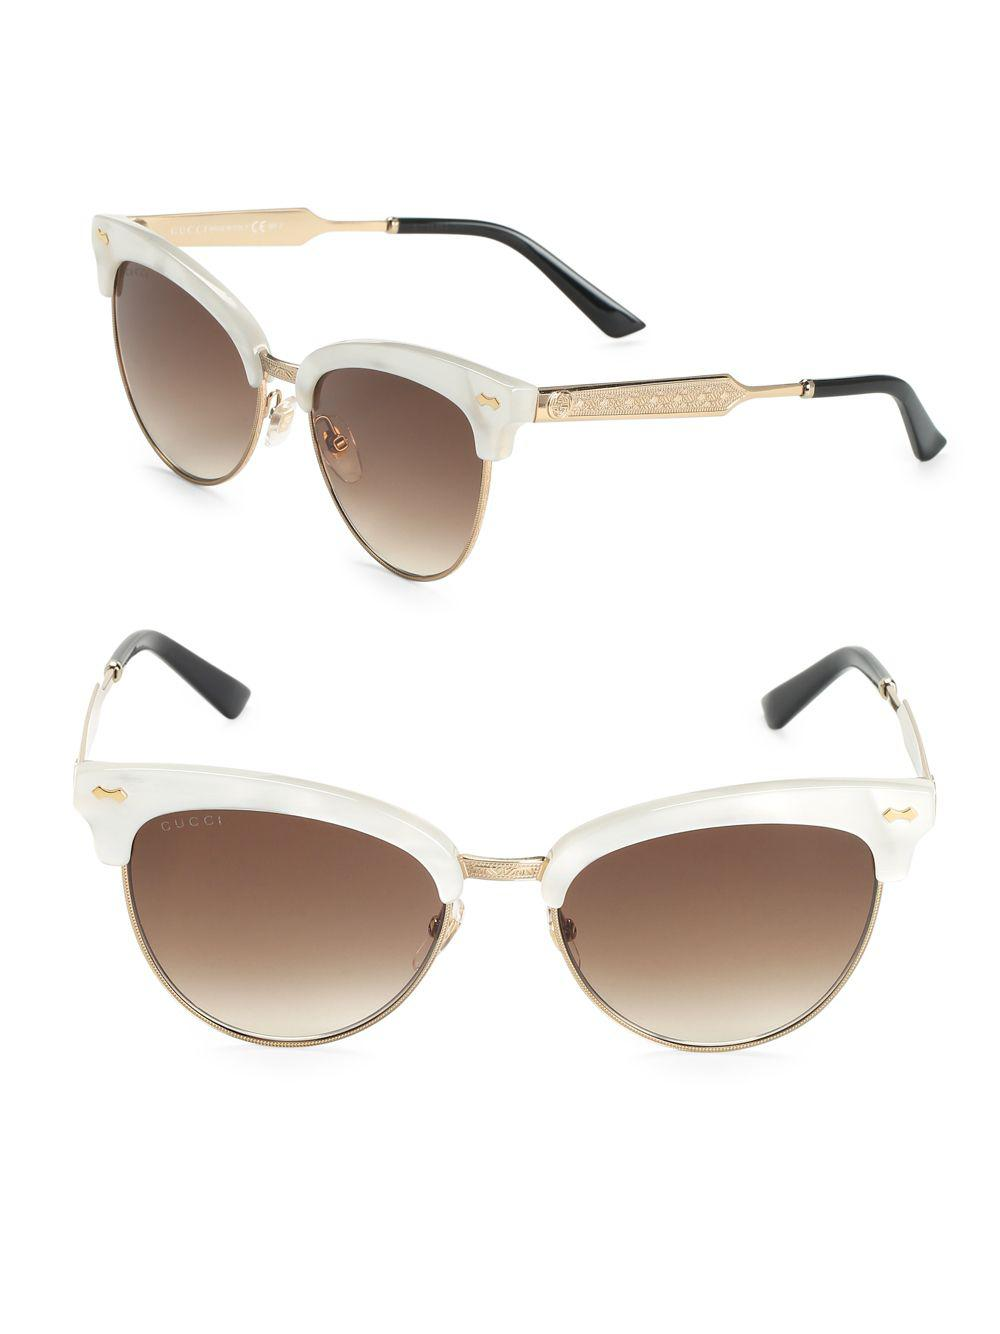 5b68096cc7 Gucci 55mm Mother-of-pearl Cat s Eye Sunglasses - Lyst